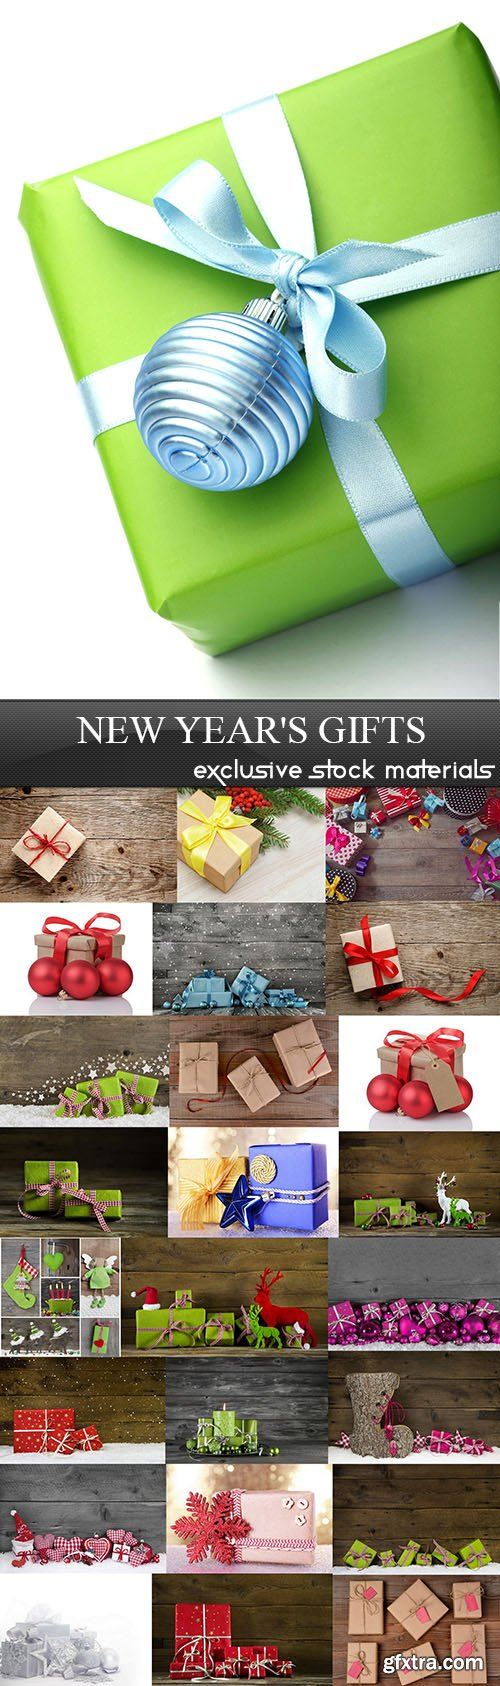 New Year's Gifts, 25xUHQ JPEG